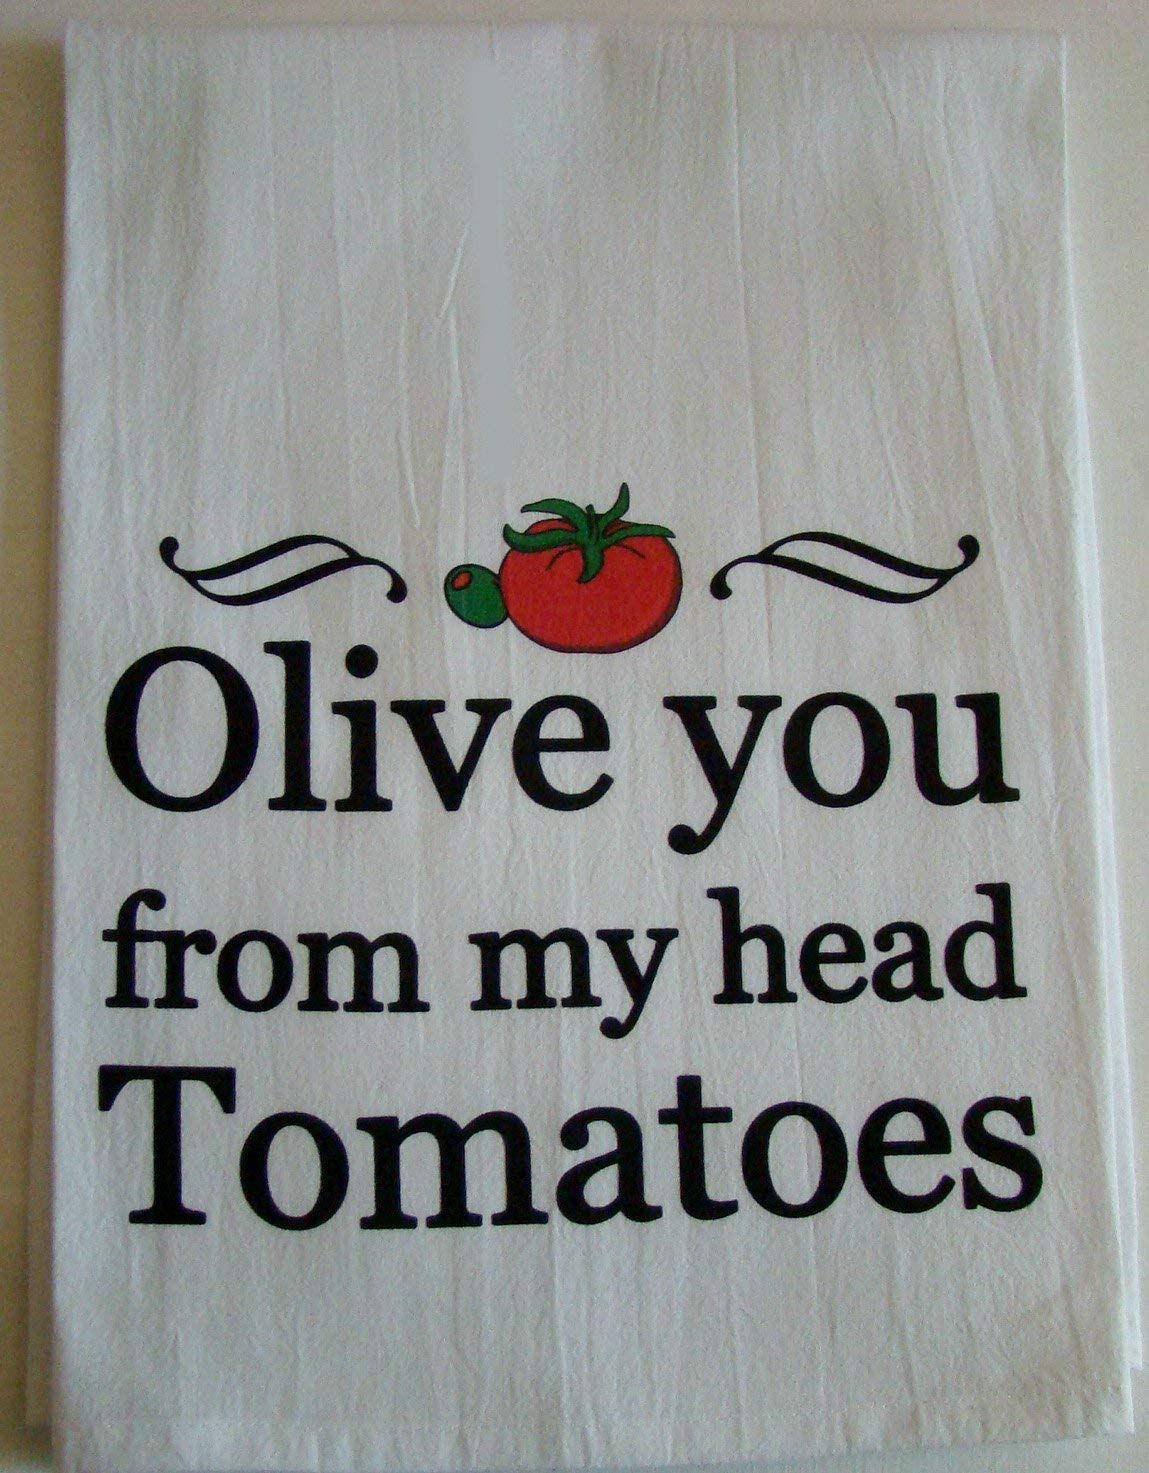 Olive you from my head tomatoes printed tea towel